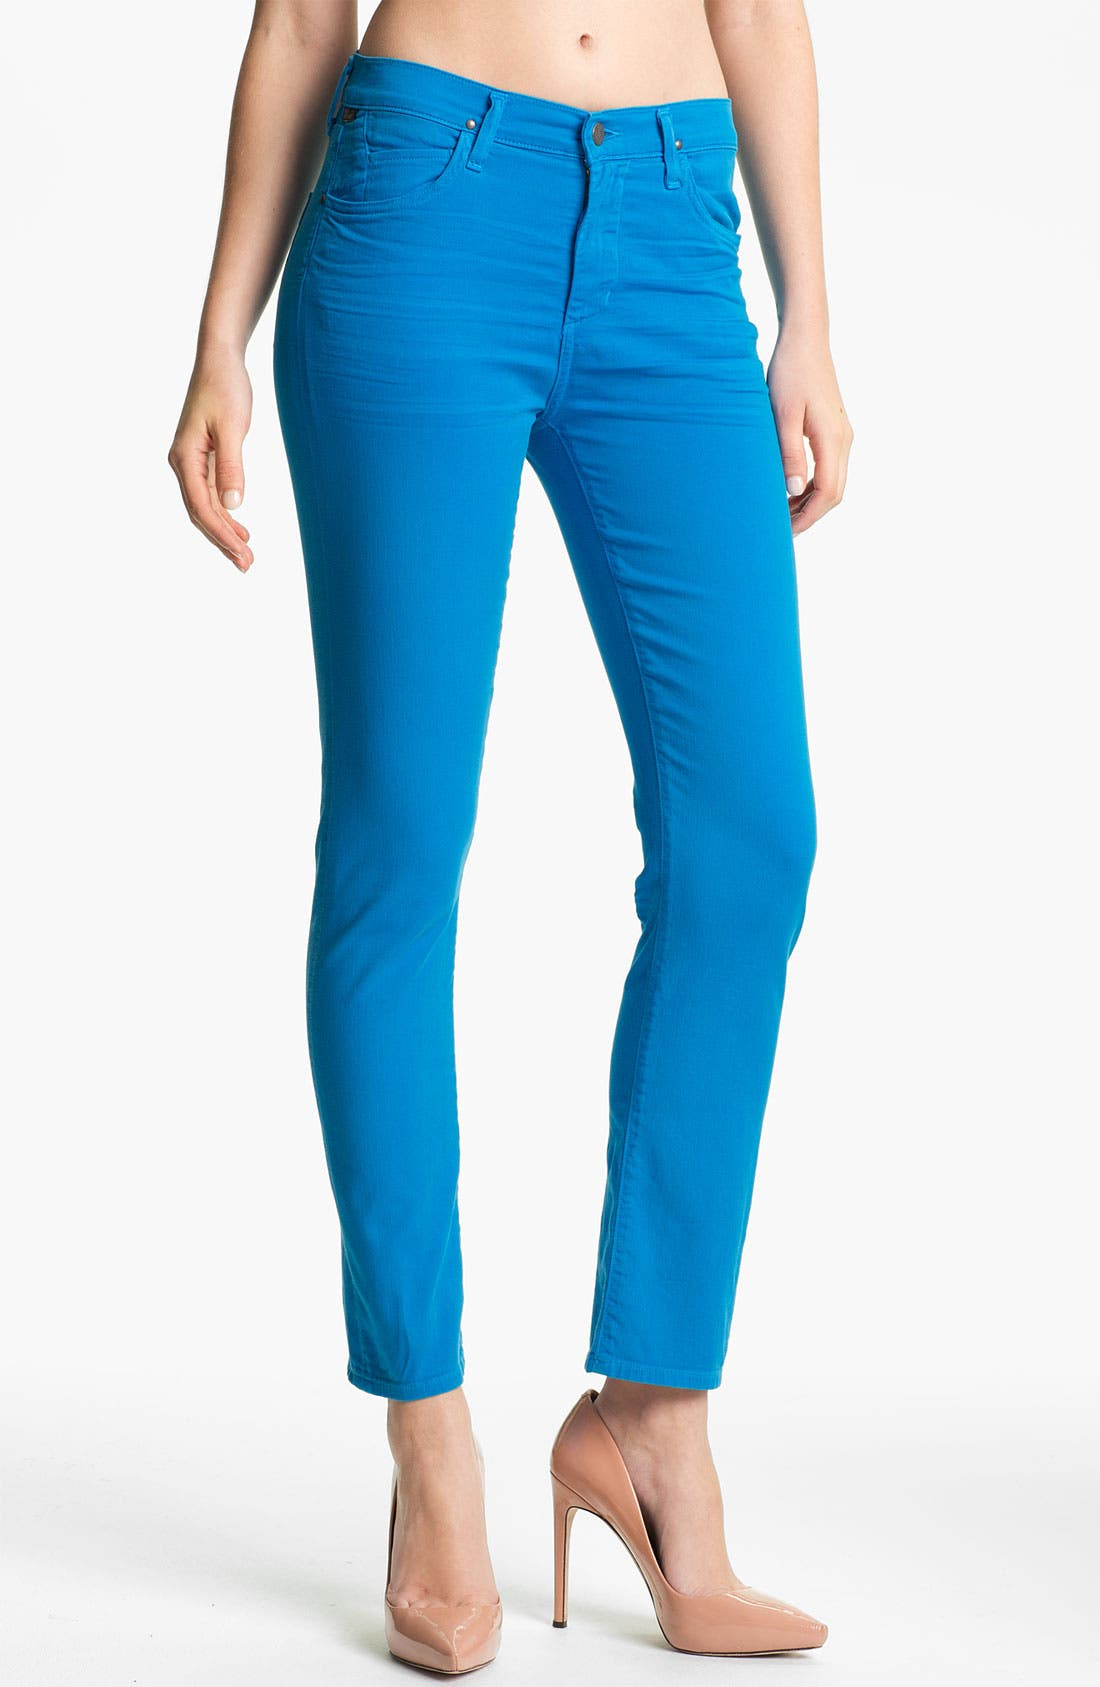 Alternate Image 1 Selected - Citizens of Humanity 'Carlton' Crop Skinny Jeans (India Sky)